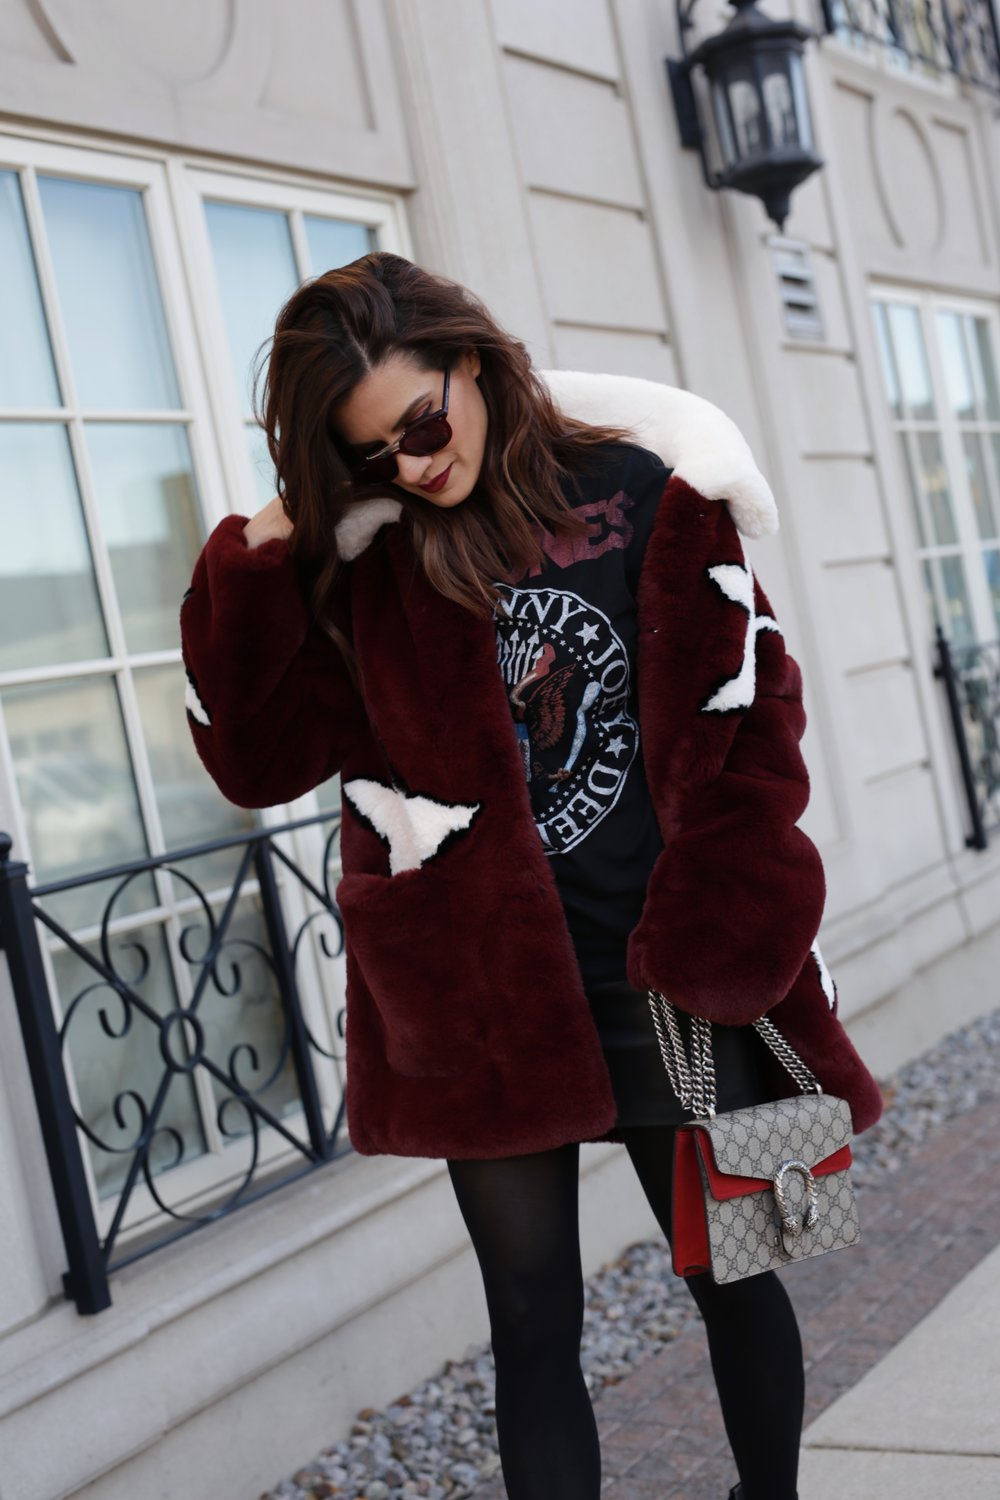 Guess star faux fur coat, Kate Bosworth x Matisse Charlotte star studded boots, Gucci Dionysus, Mackage leather skirt, Ramones graphic tshirt, street style - woahstyle.com_7146.JPG